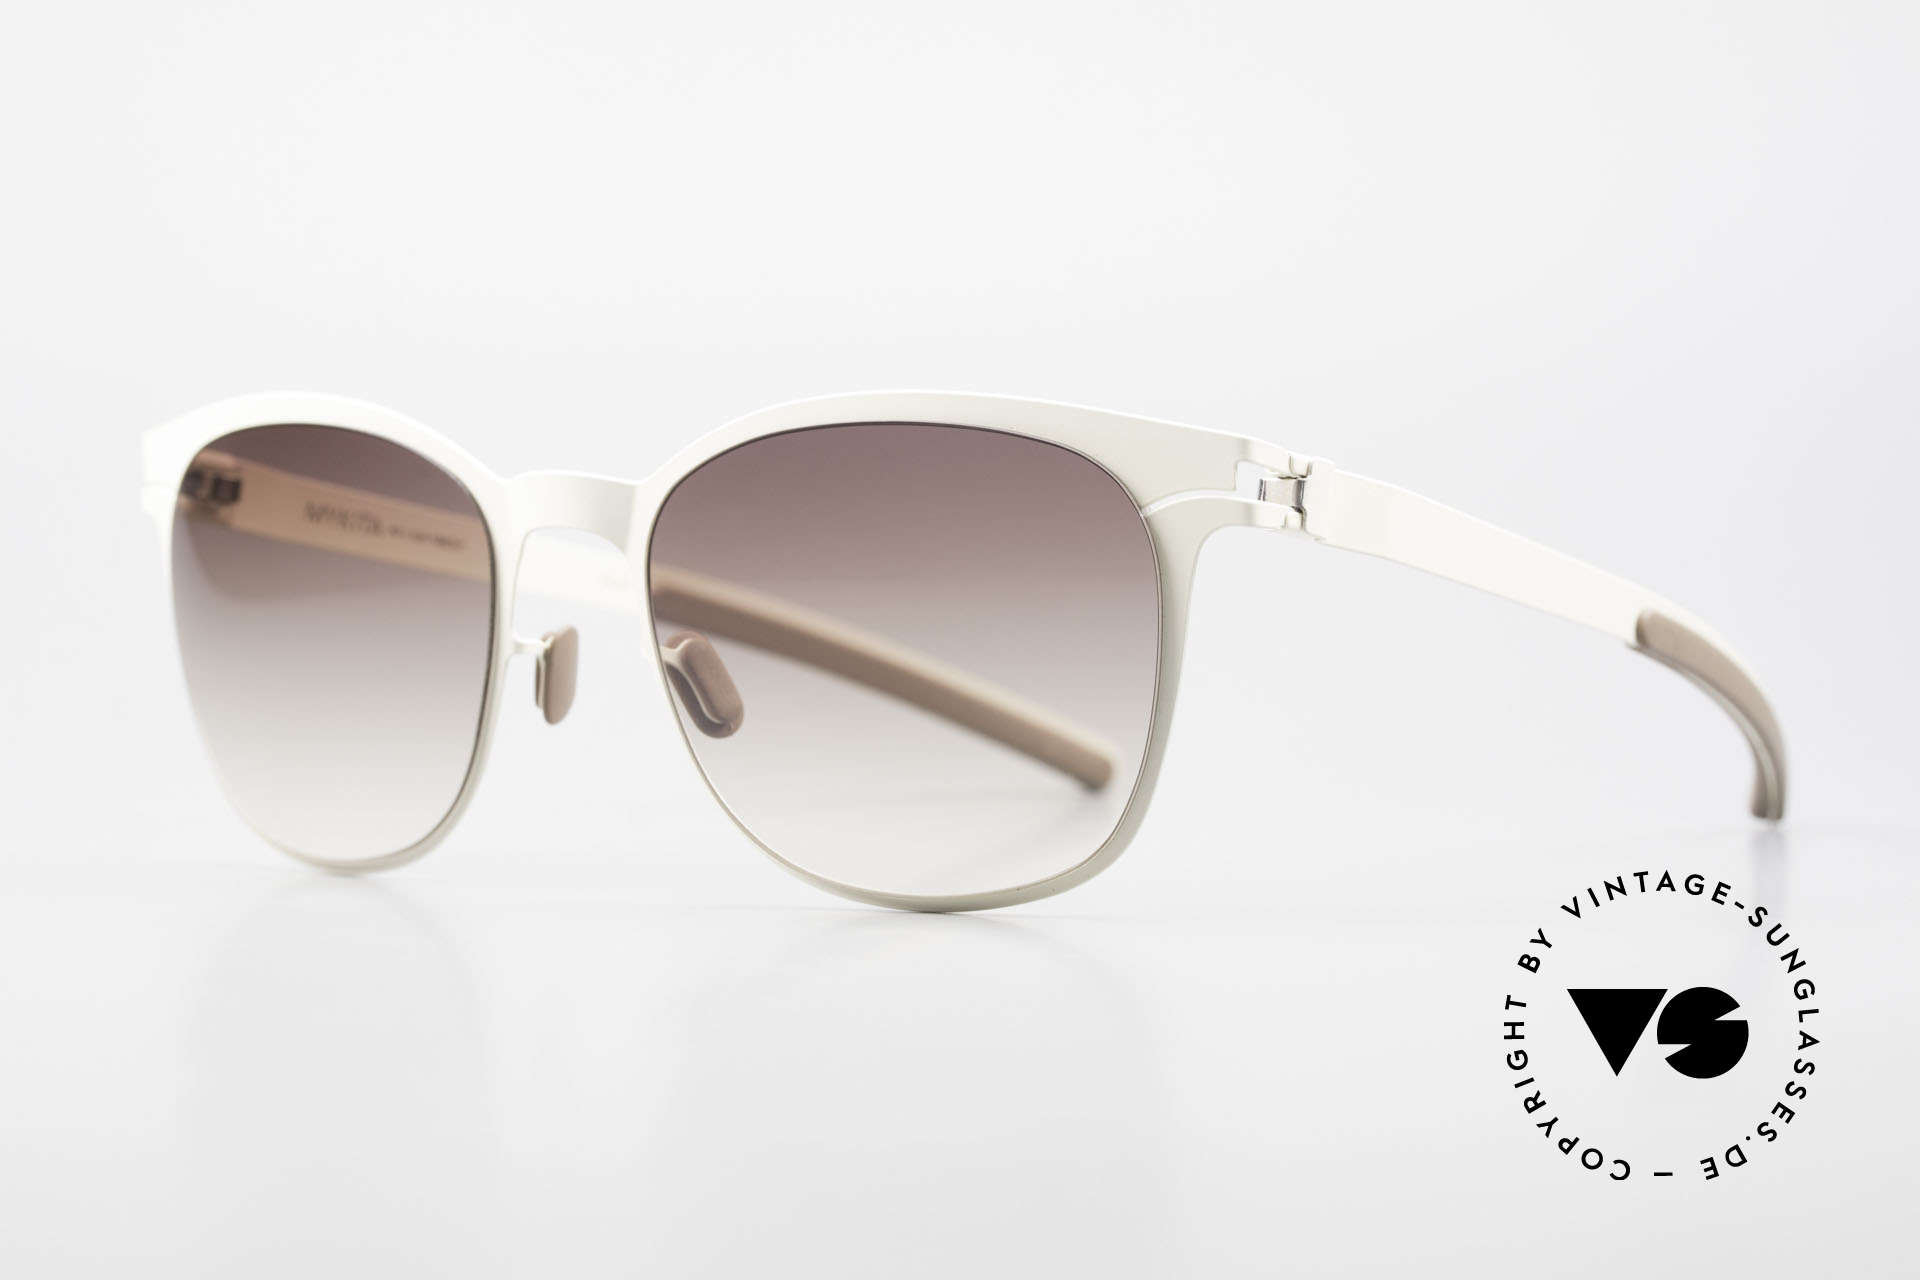 Mykita Greta Ladies Sunglasses From 2009, innovative and flexible metal frame = One size fits all!, Made for Women